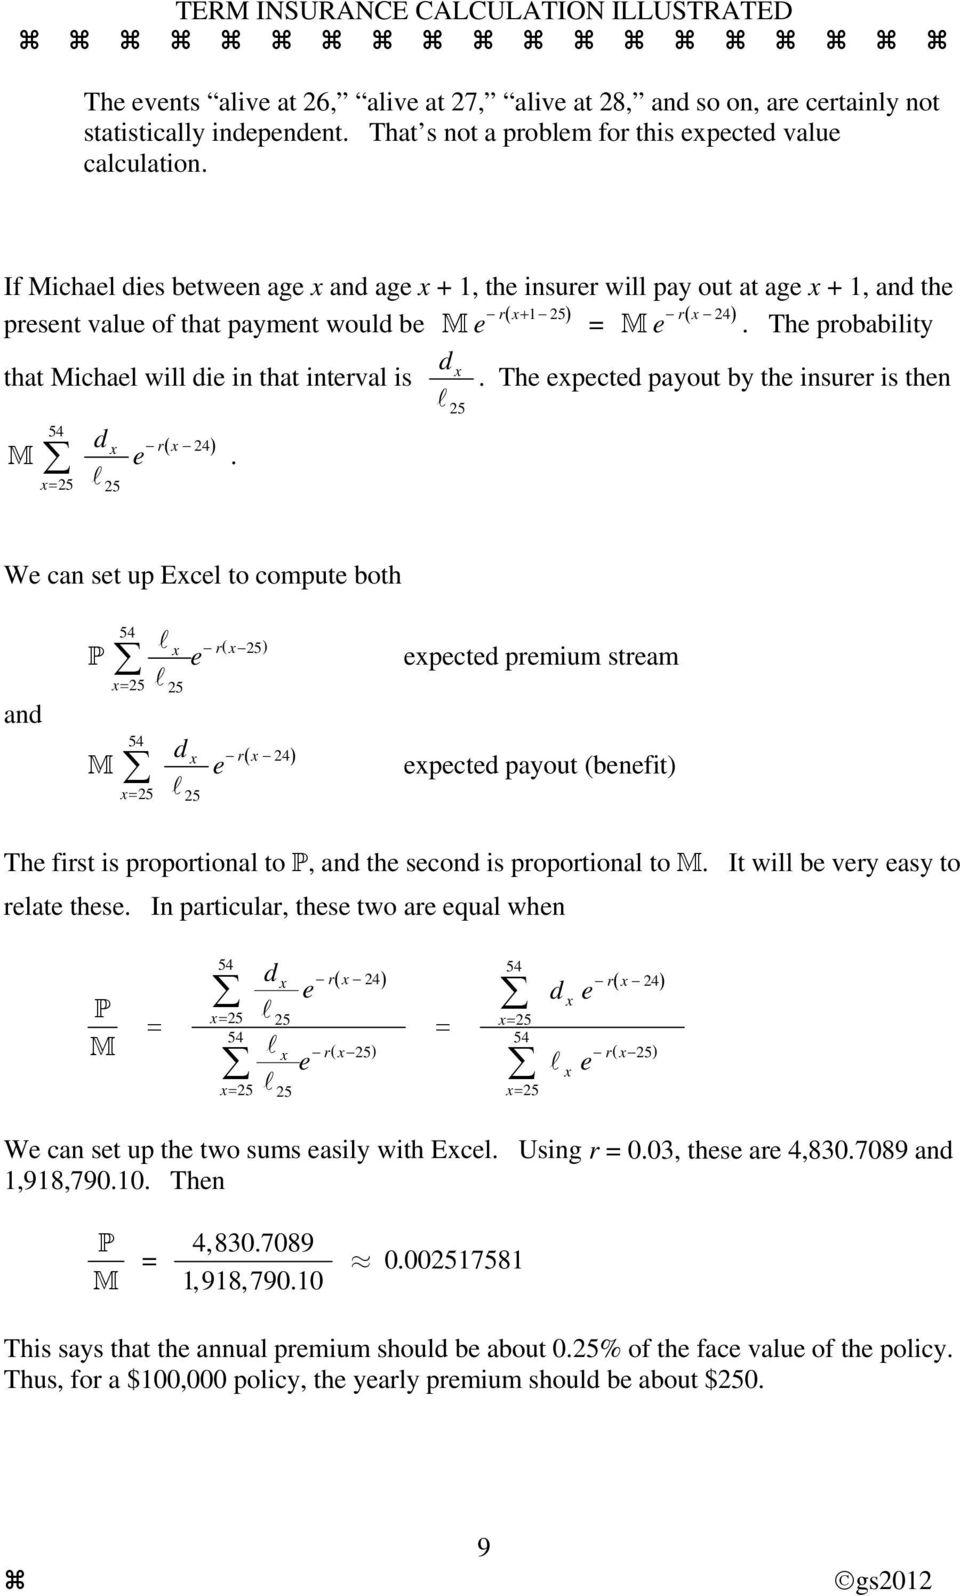 The probabiity that Michae wi die in that interva is d e 54 r( 24) M. = d.